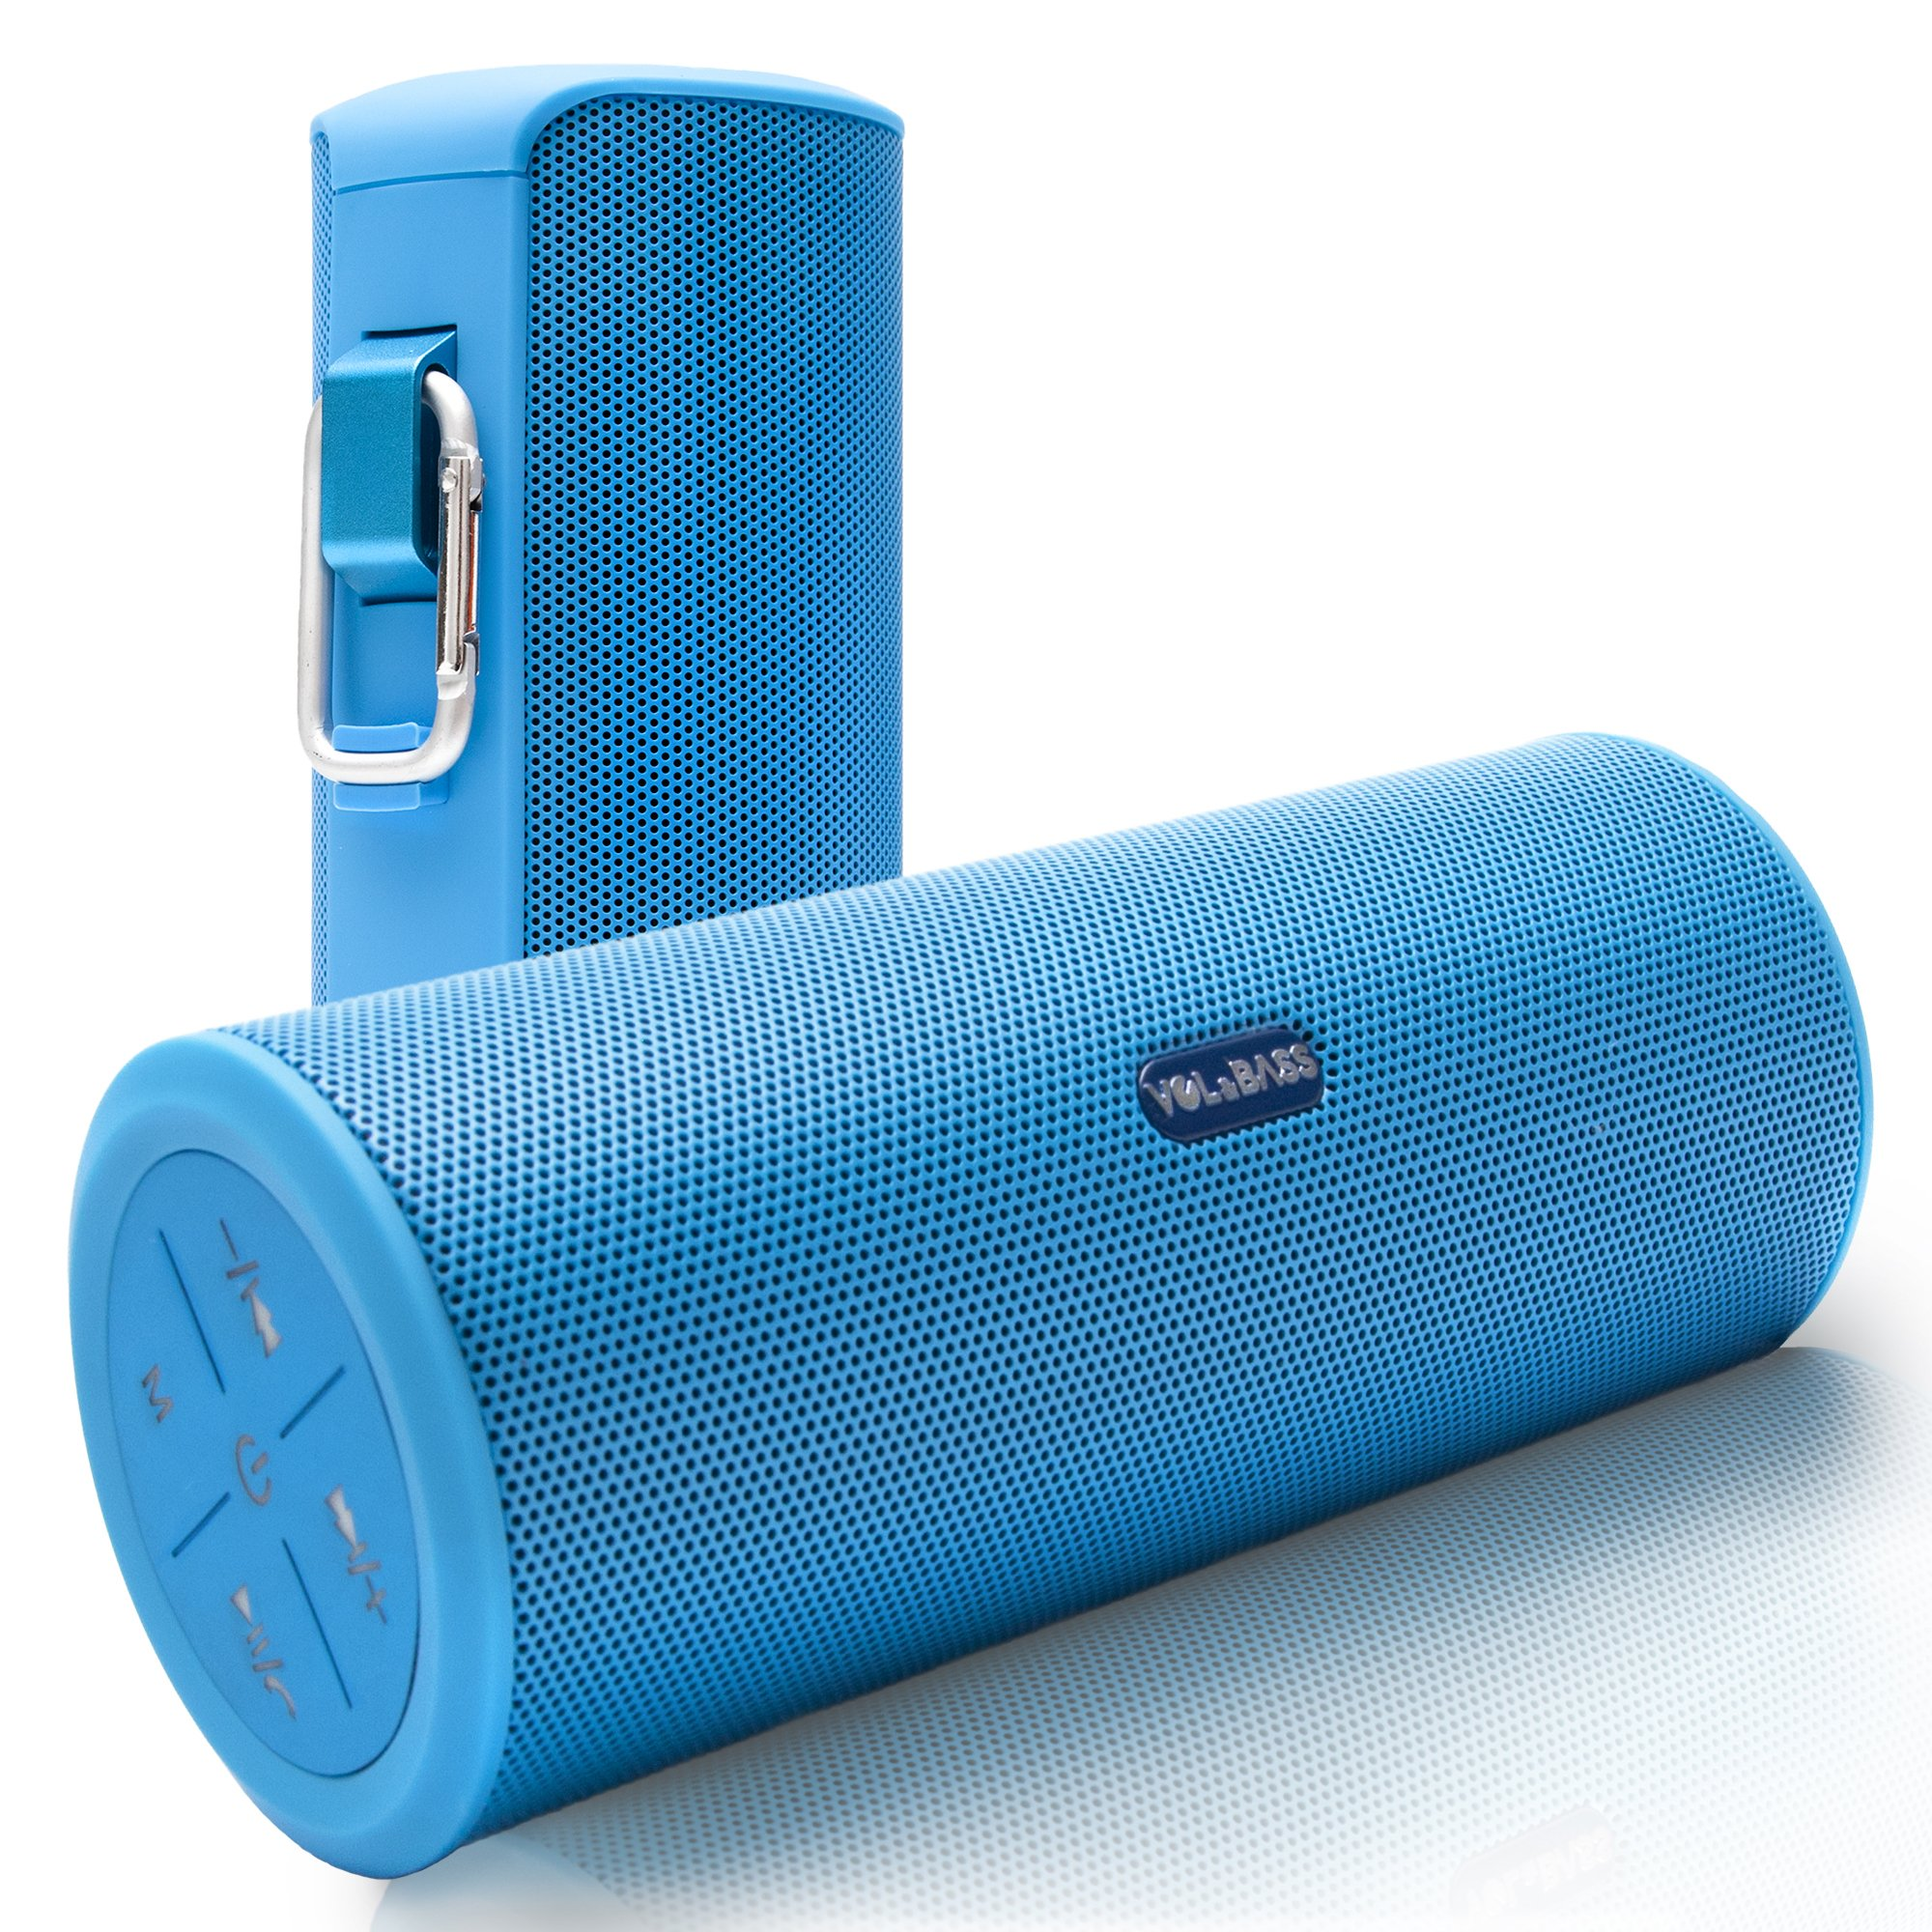 Volume & Bass Wireless Bluetooth Speakers. Best Portable Hi-Fi 360 Degree Sound & Rechargeable Power Bank for iPhone Ipad Mini Samsung AUX MP3 Players - HandsFree (Blue)